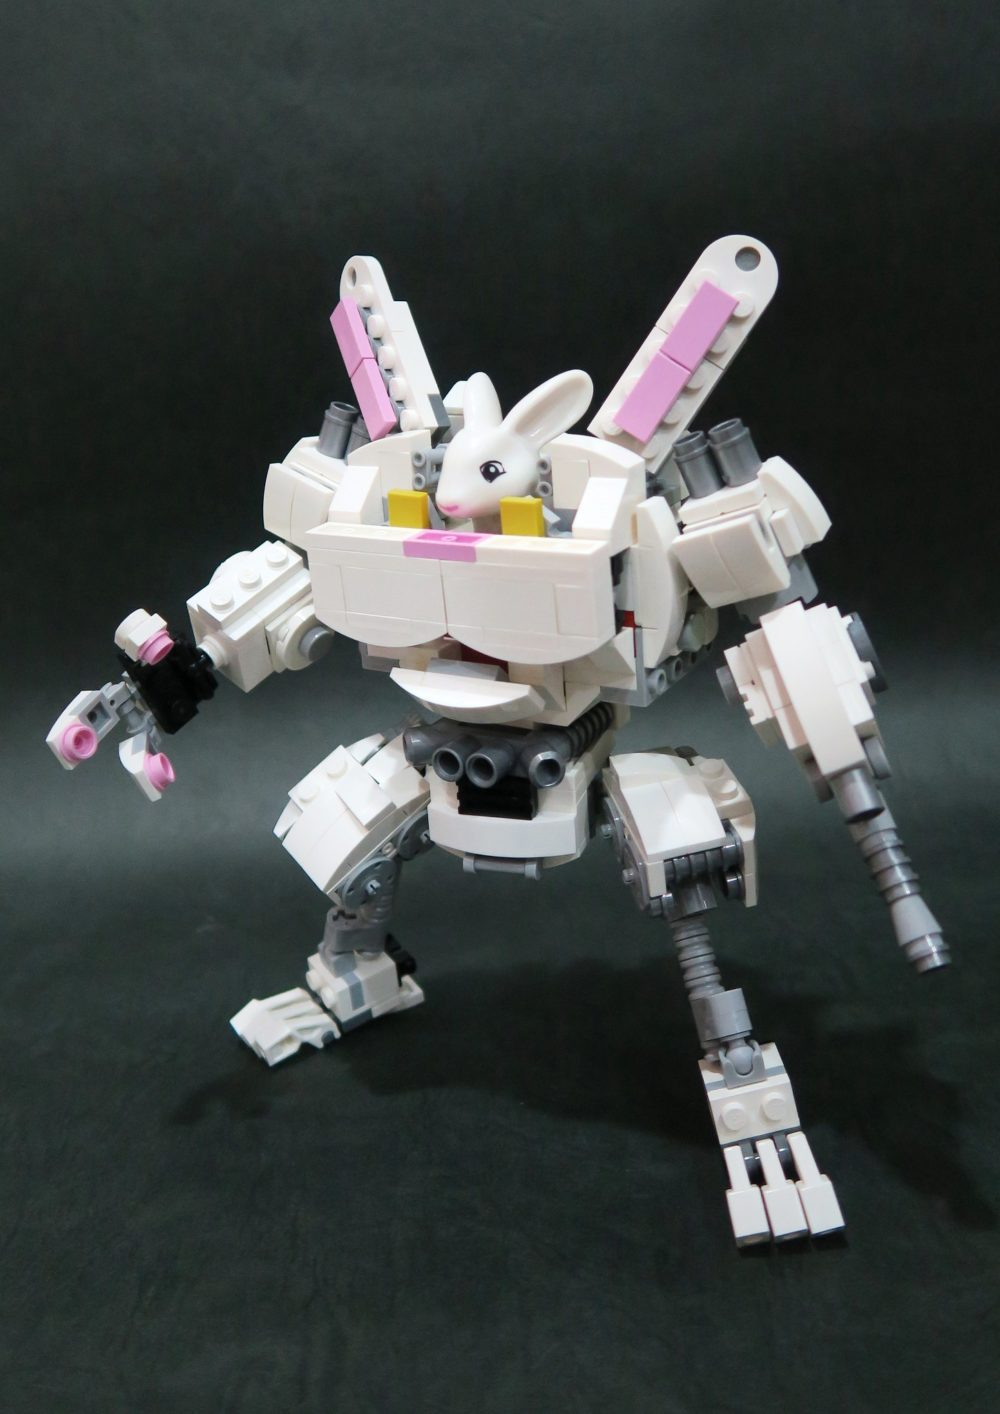 Joe Chan - Lego x Duplo Rabbit Mecha